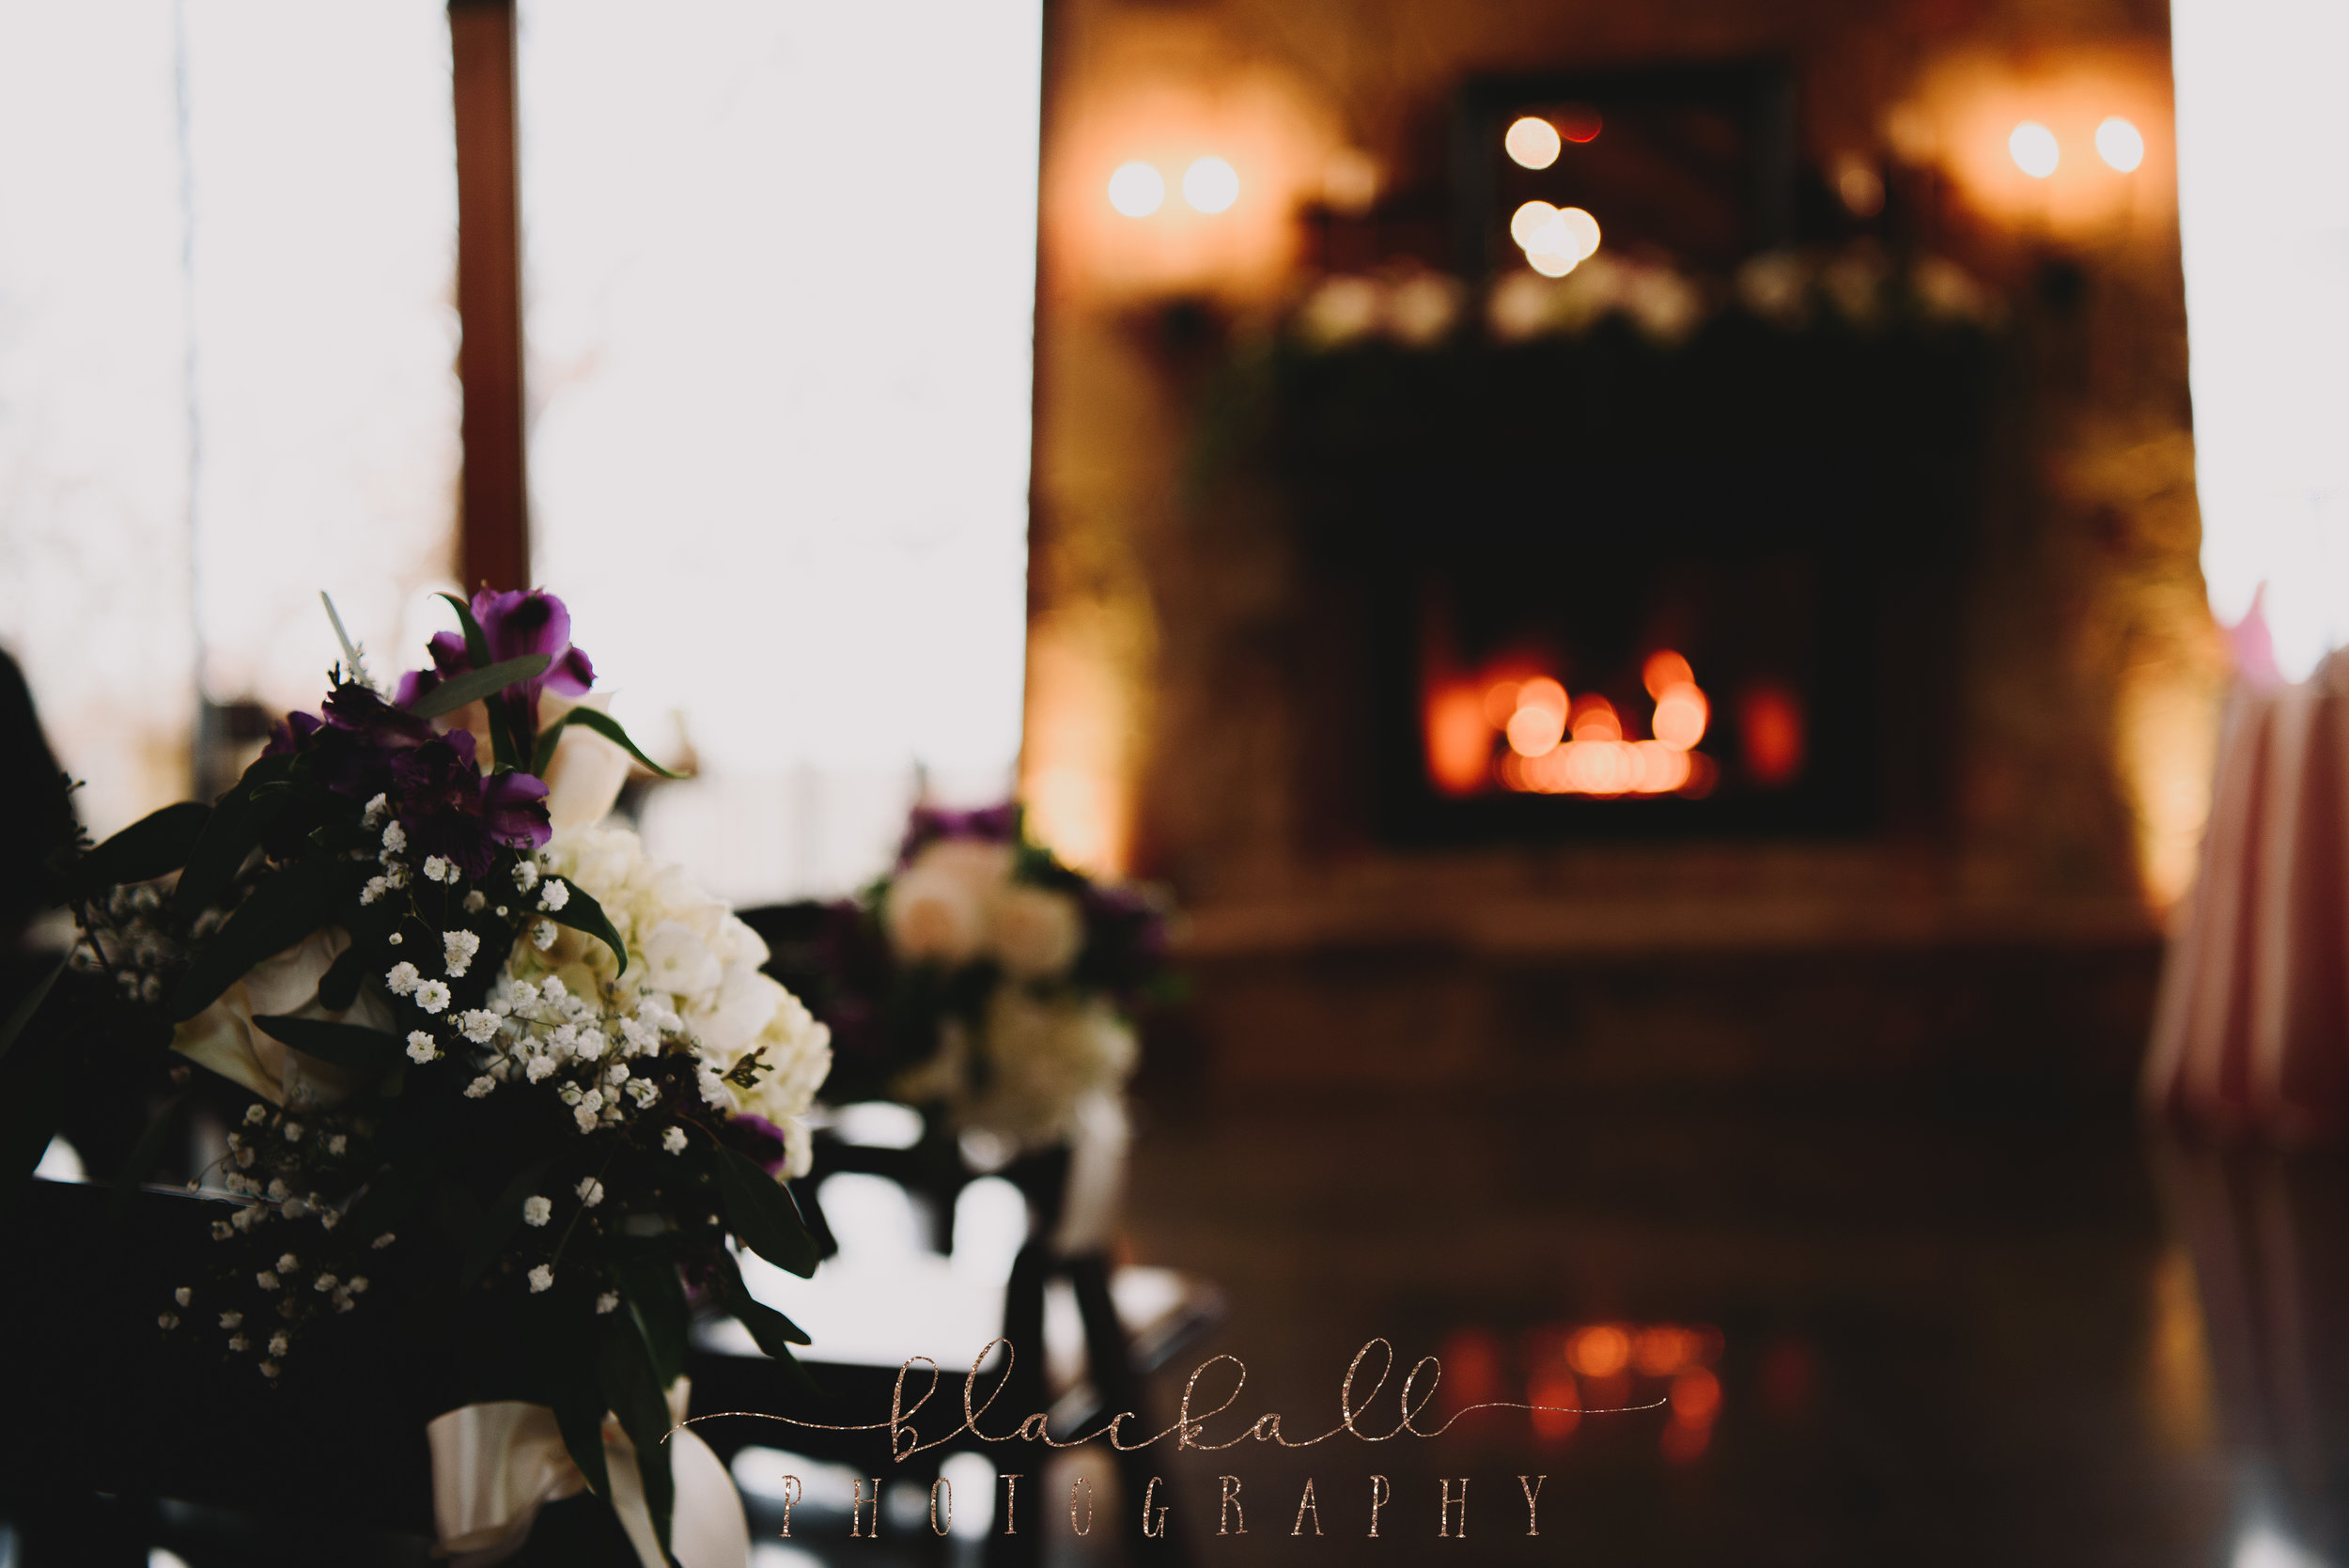 The fireplace in The Lodge is just that perfect extra little touch